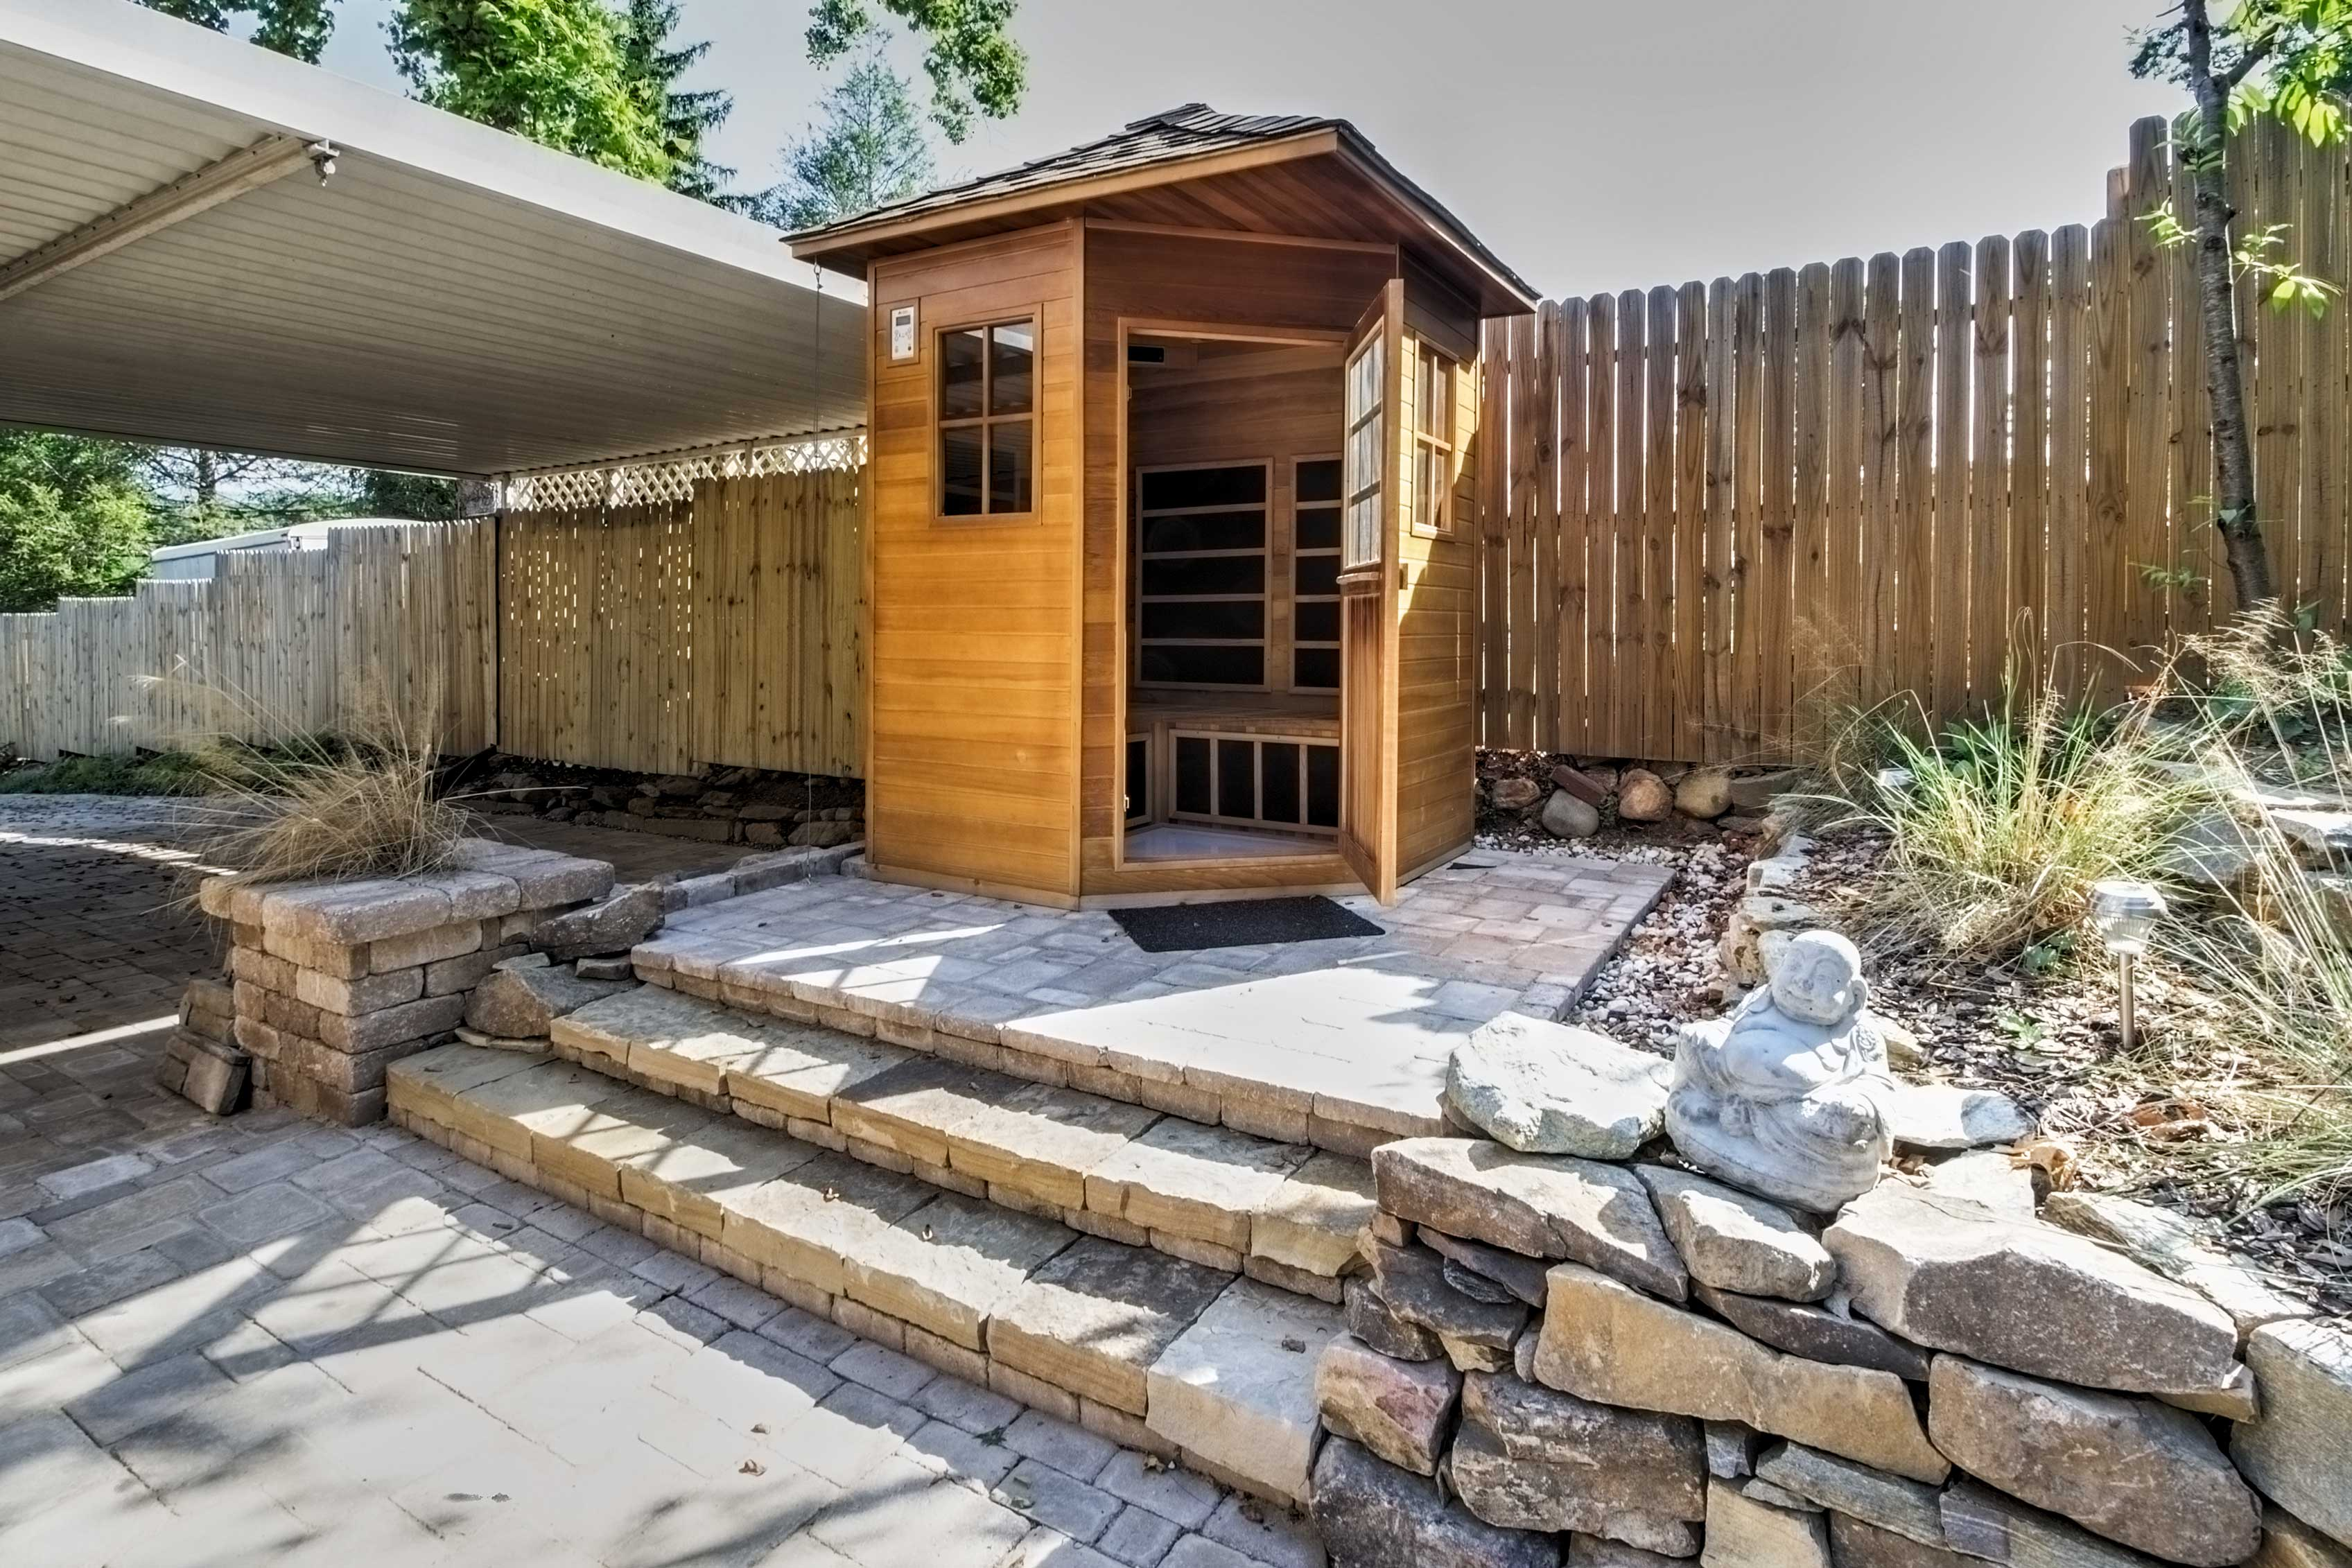 Relax and unwind in the private sauna!